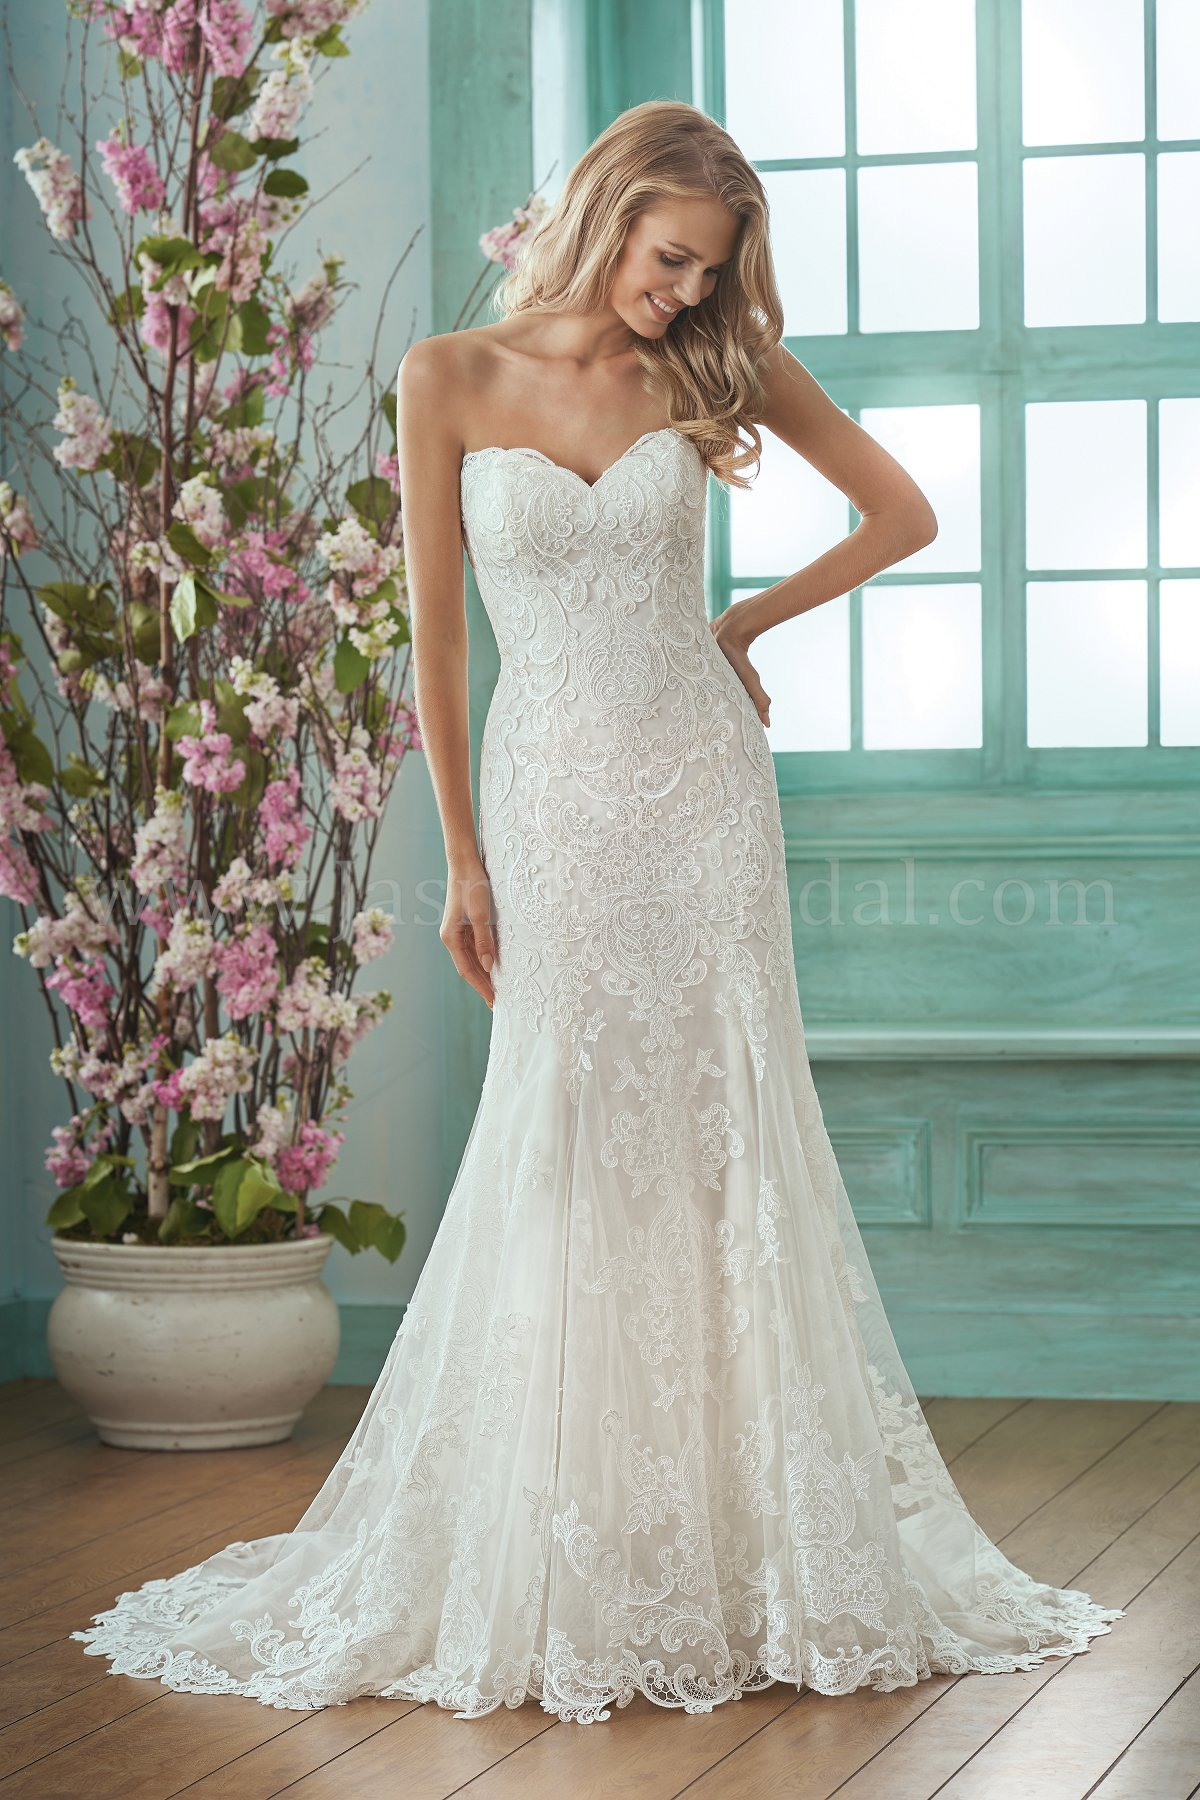 F201017 Sweetheart Strapless Embroidered Lace Silky Jersey Wedding Dress